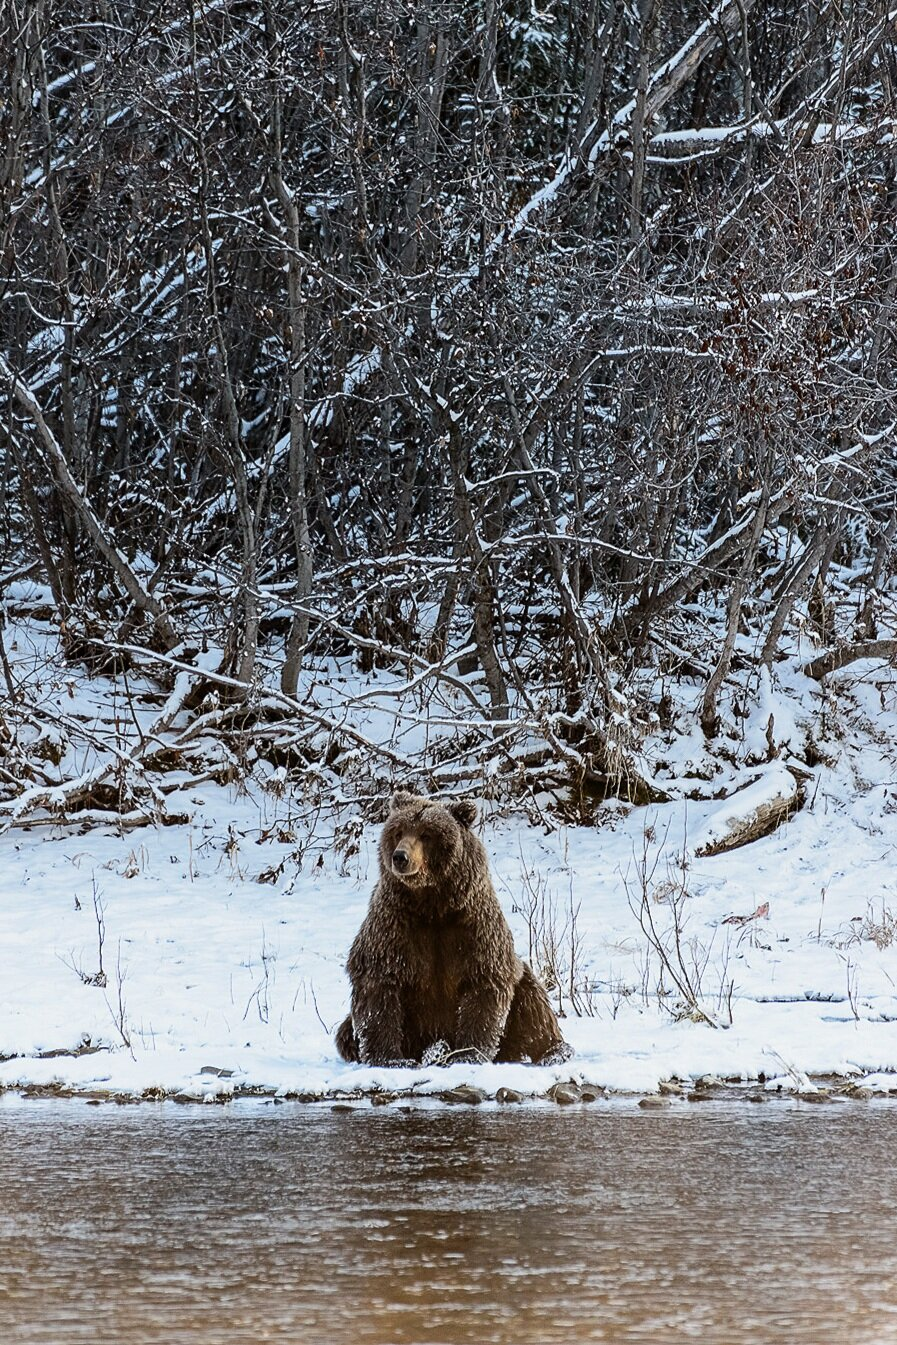 Ice Grizzly Sitting on Snowy Riverbank 1 - Yukon Territory, Canada